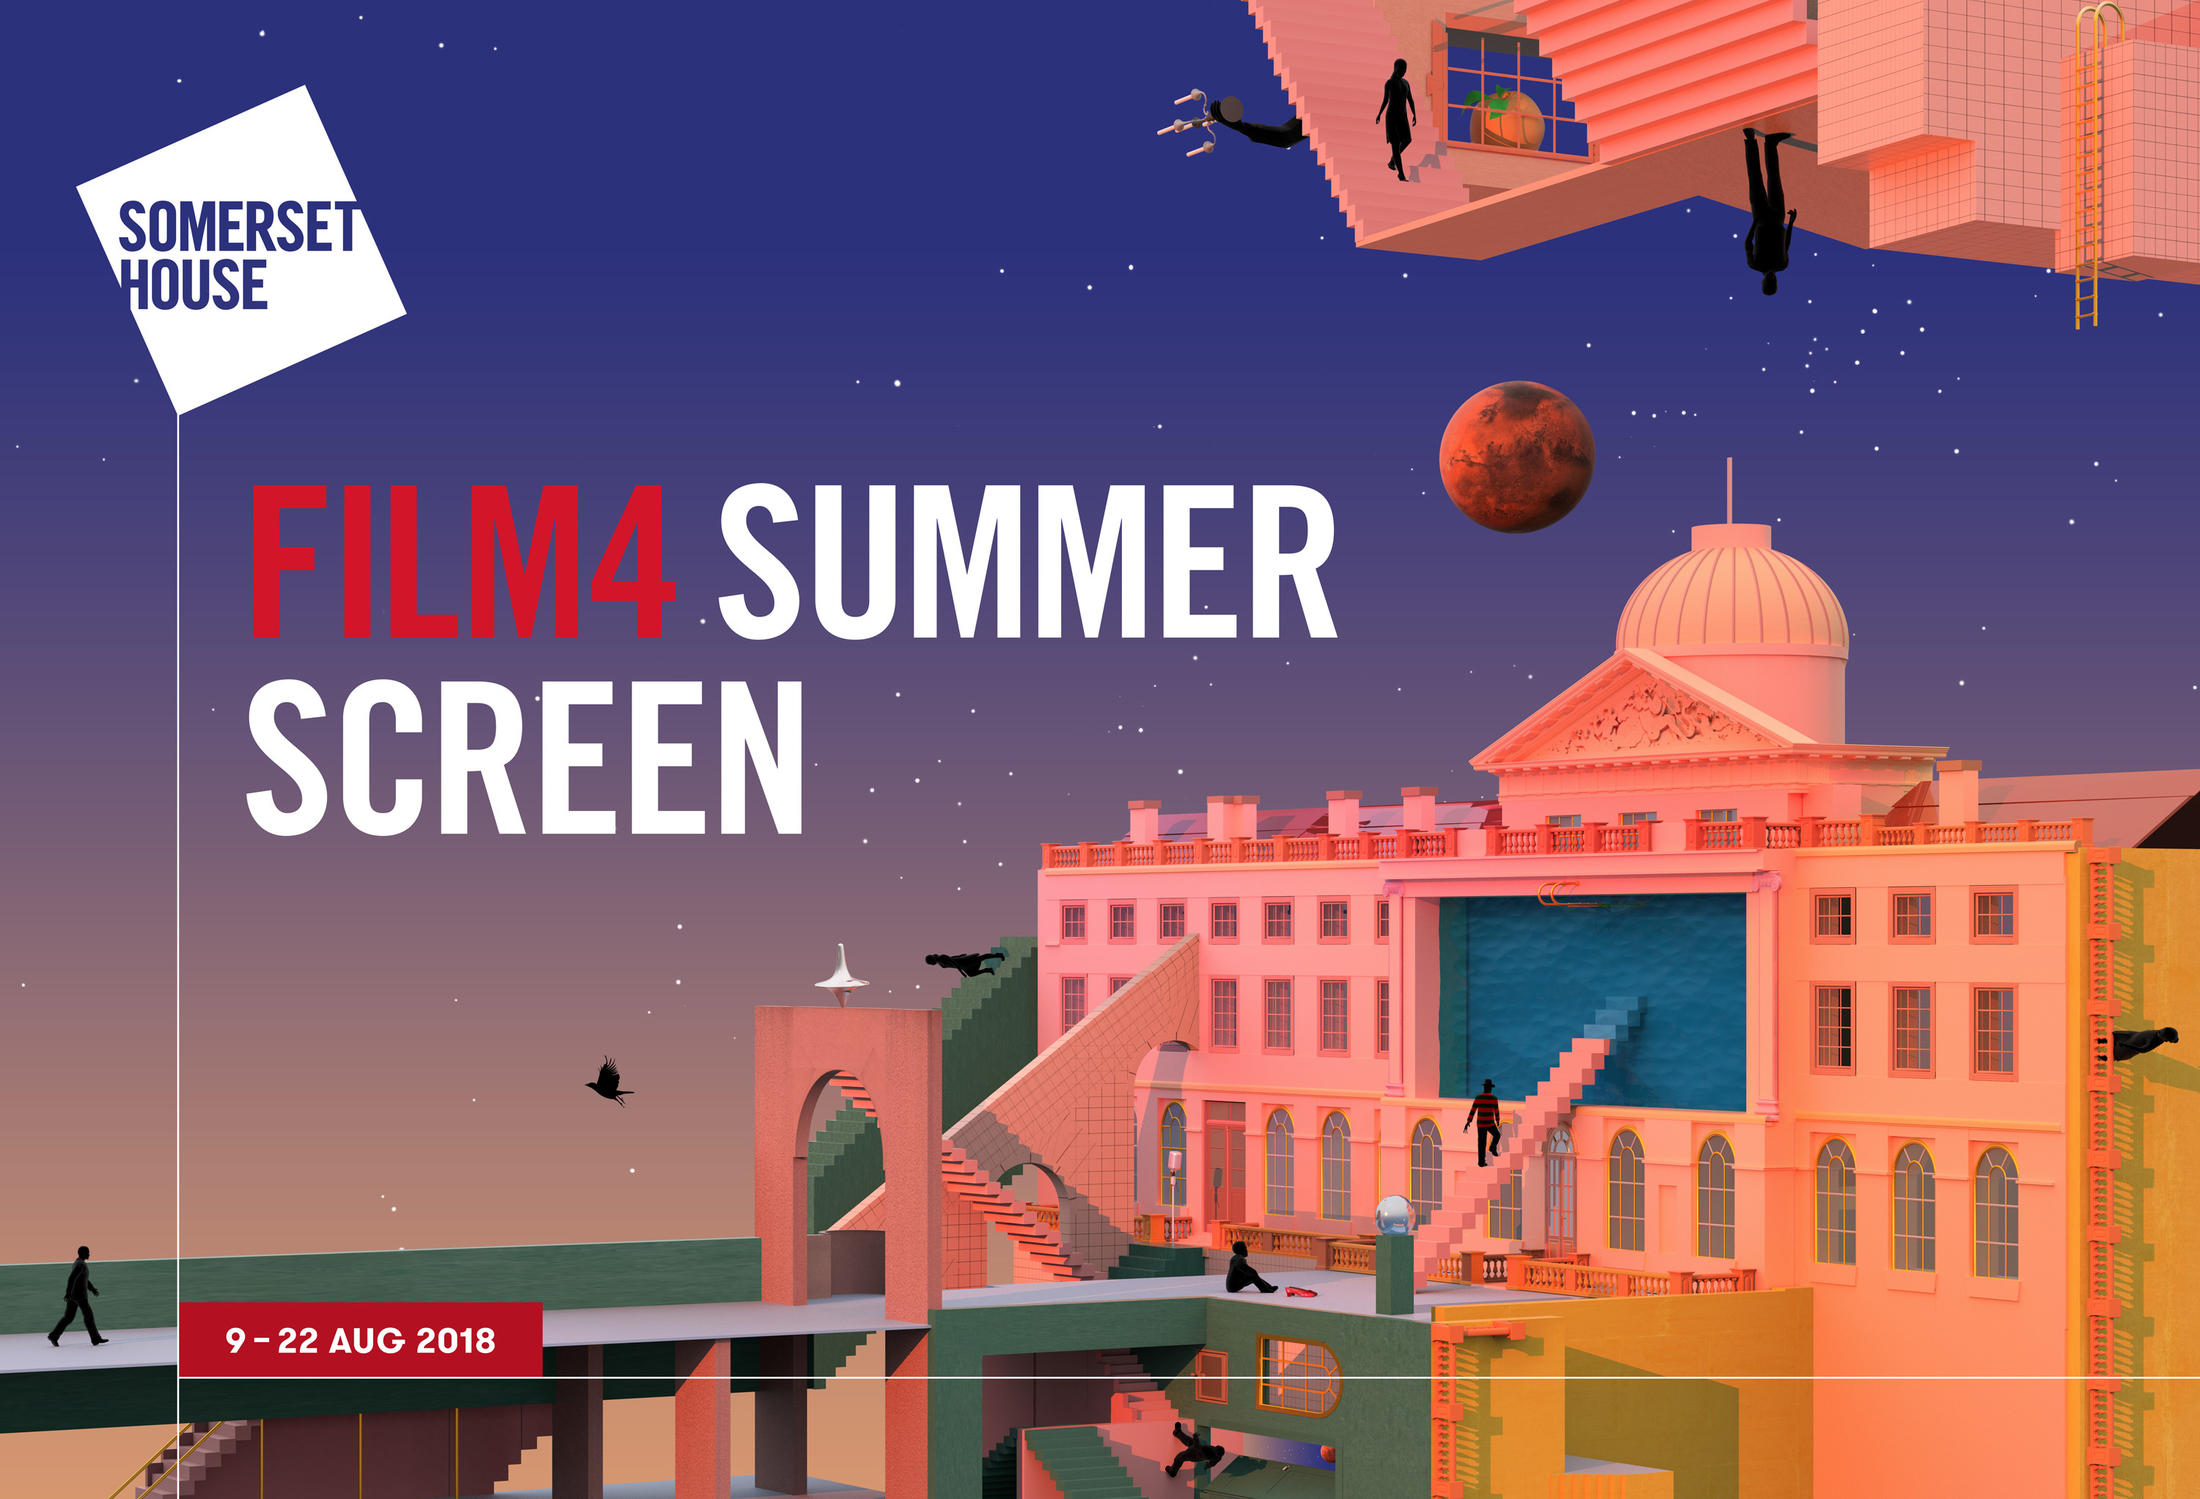 Film 4 Summer Screen 2018 by Supple Studio